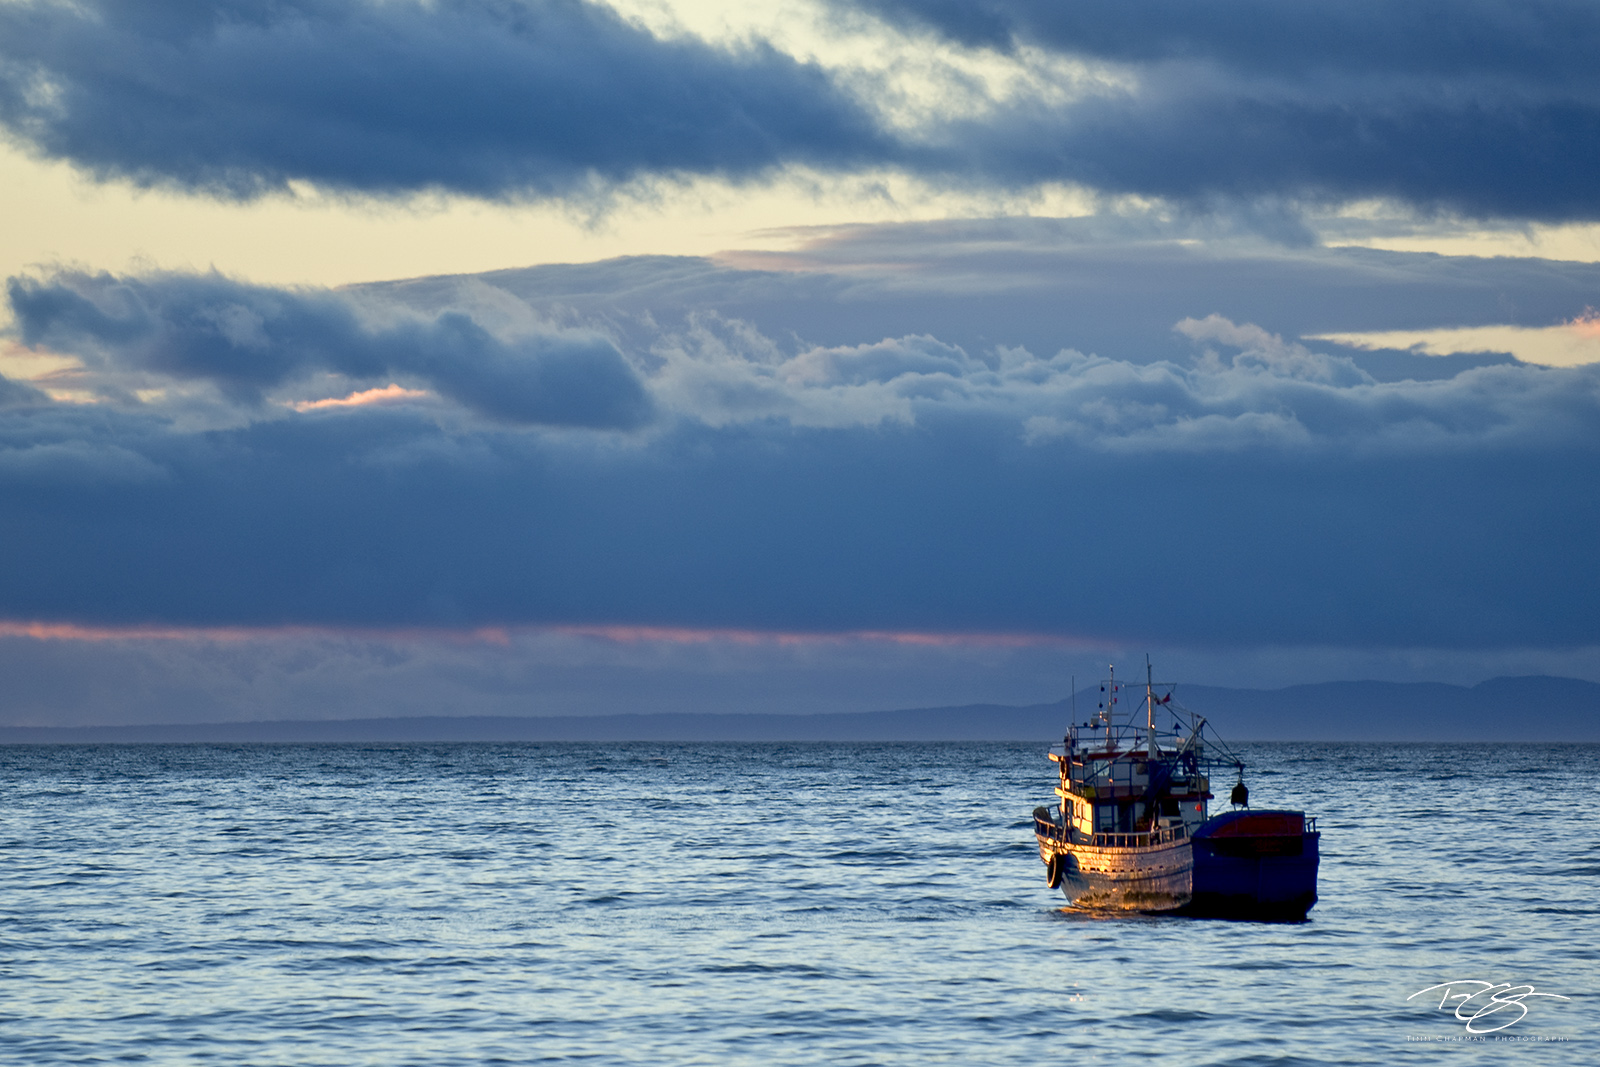 solitude, stormy skies, fishing trawler, fishermen, sunrise, golden light, fishing boat, treacherous seas, calm before the storm, uncertainty, don't know what tomorrow brings, patagonia, punta arenas,, photo